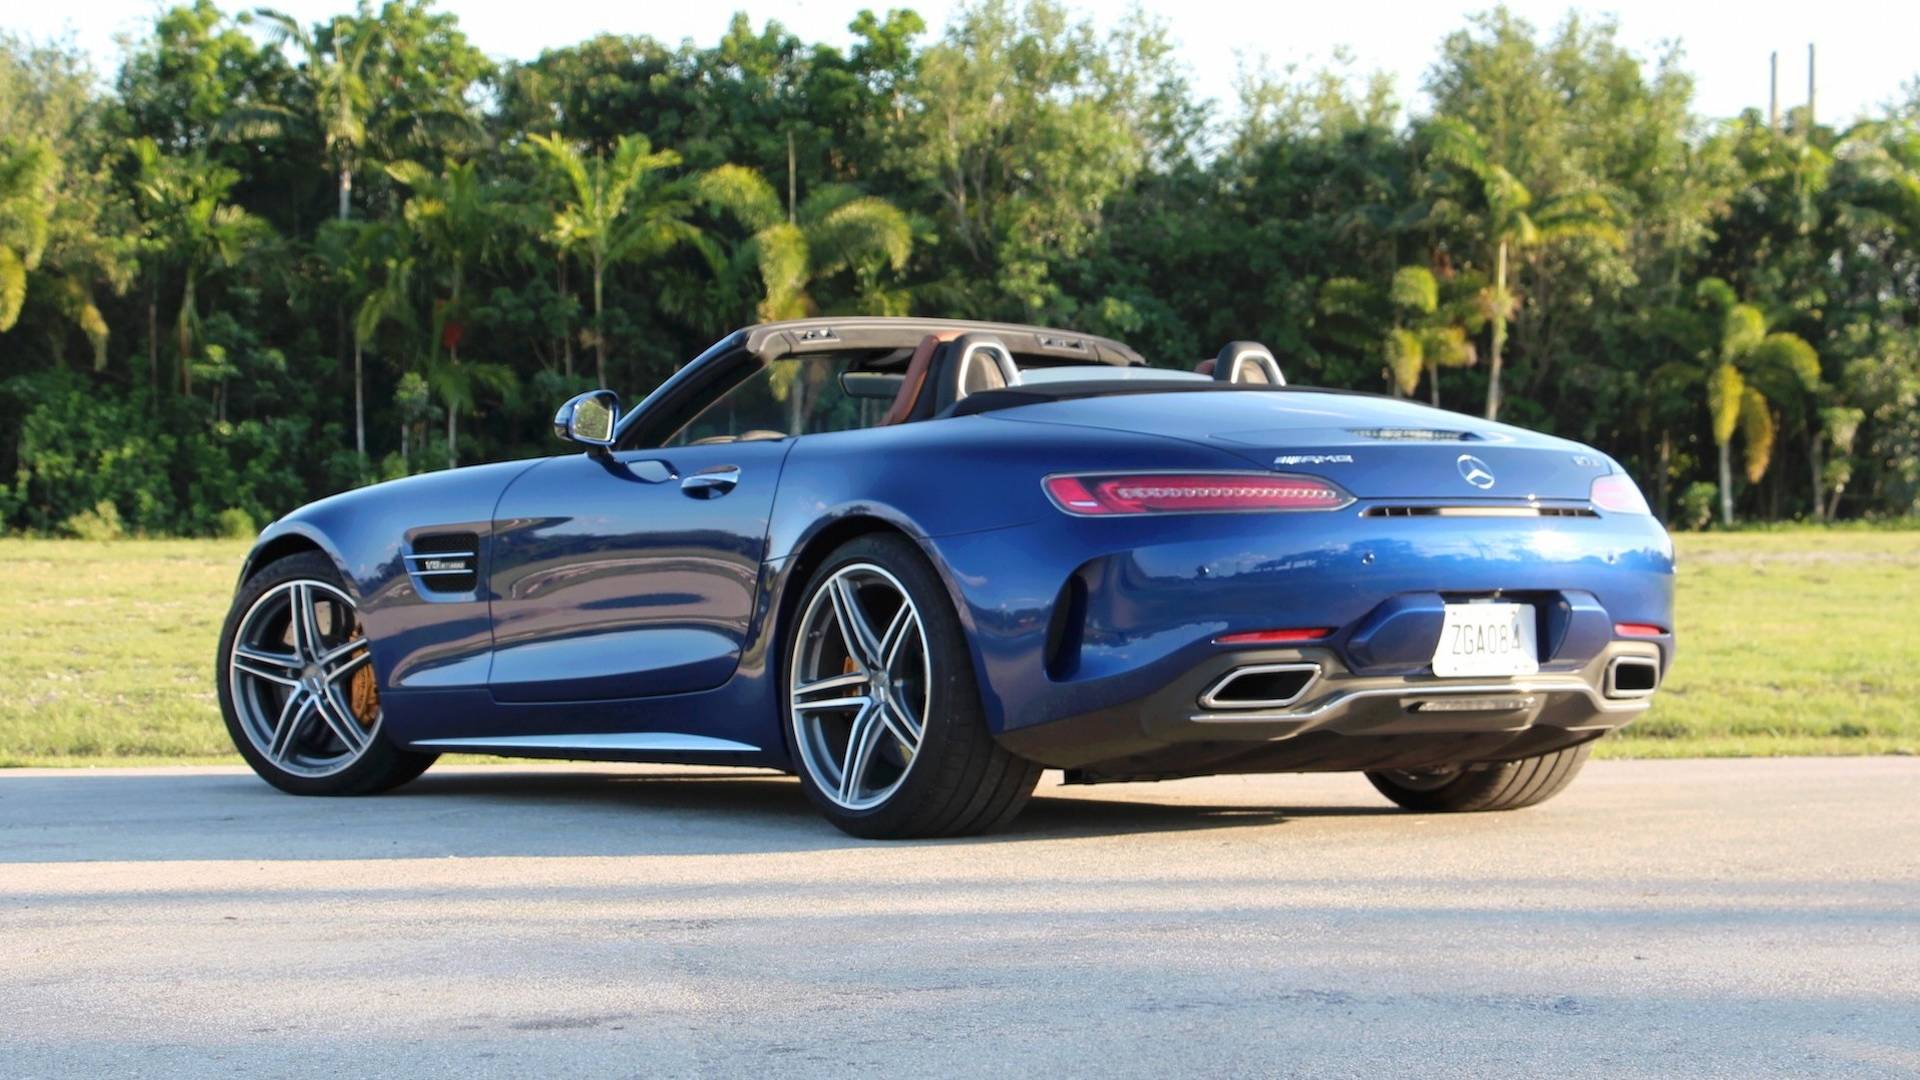 2018 Mercedes Amg Gt C Roadster Review Performance Over Pleasure